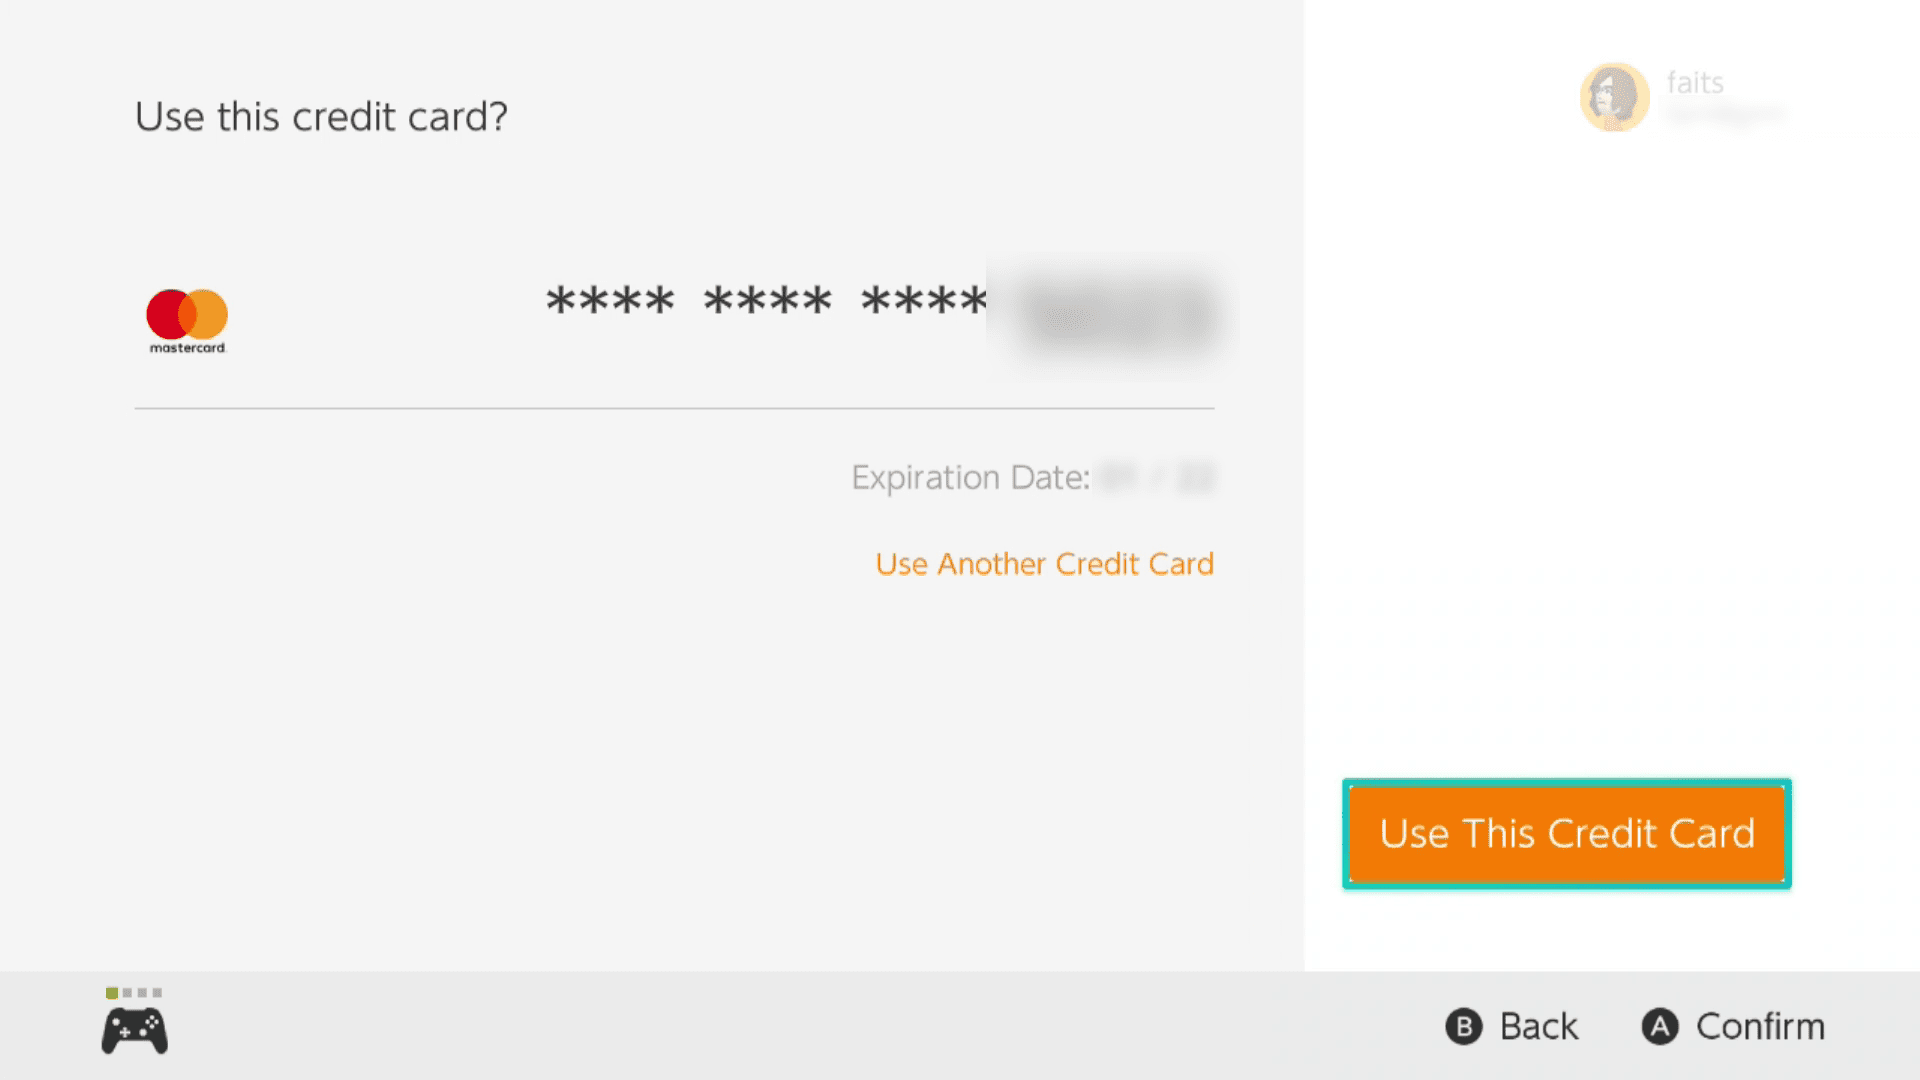 Use This Credit Card button highlighted in the Nintendo eShop.